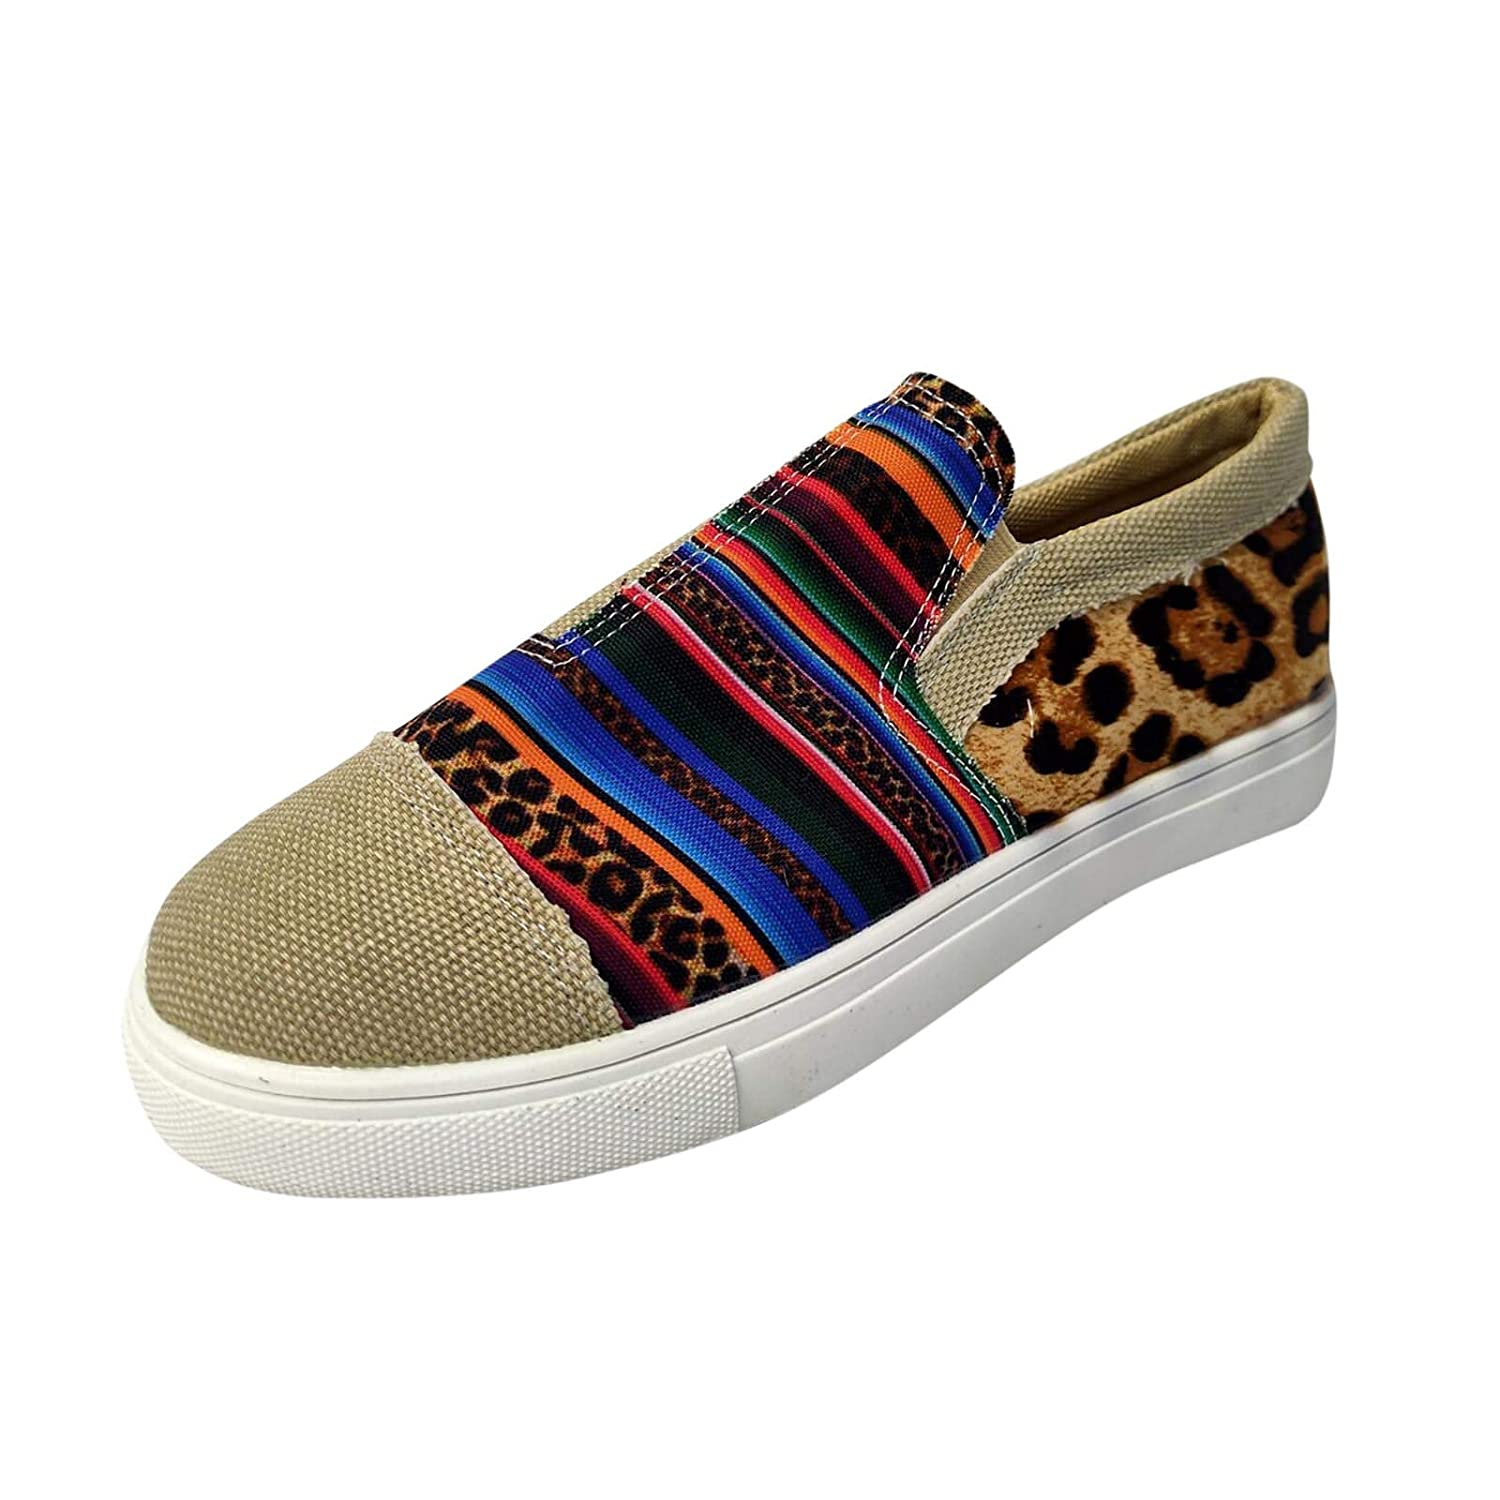 Outlet SALE Women's Canvas Shoes Slip-on Ballet Inventory cleanup selling sale Flats Sneaker Casual Classic